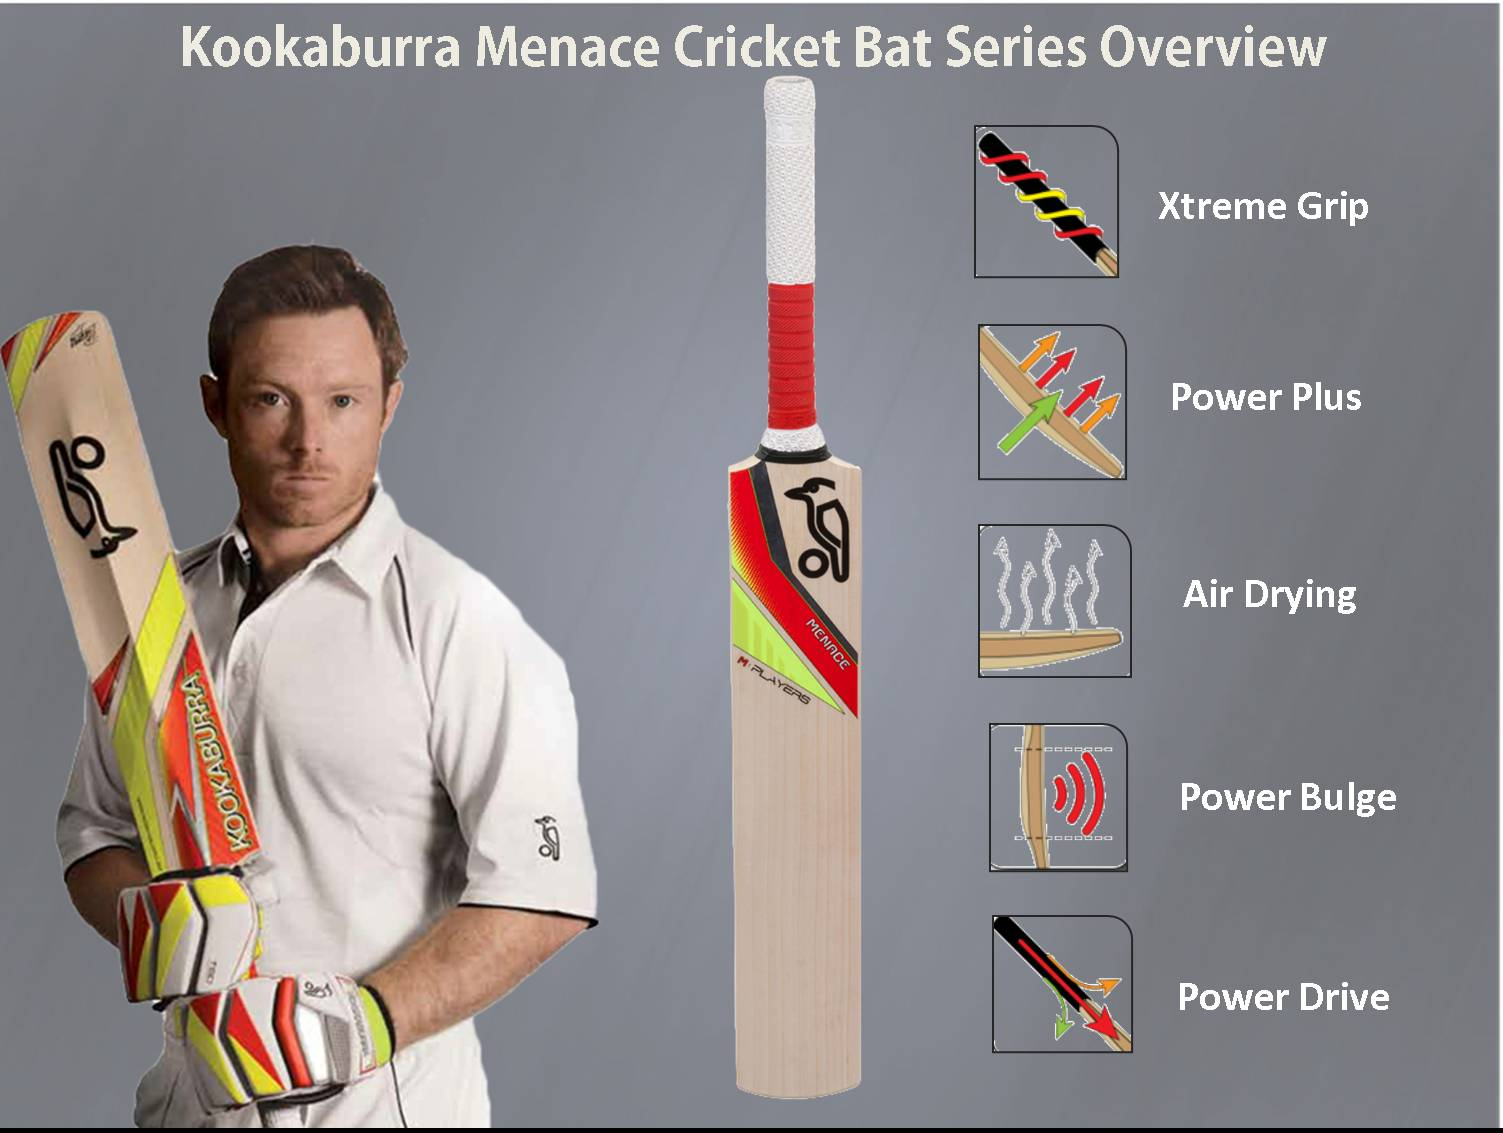 kookaburra cricket bats Menace ,kookaburra Menace  cricket bats